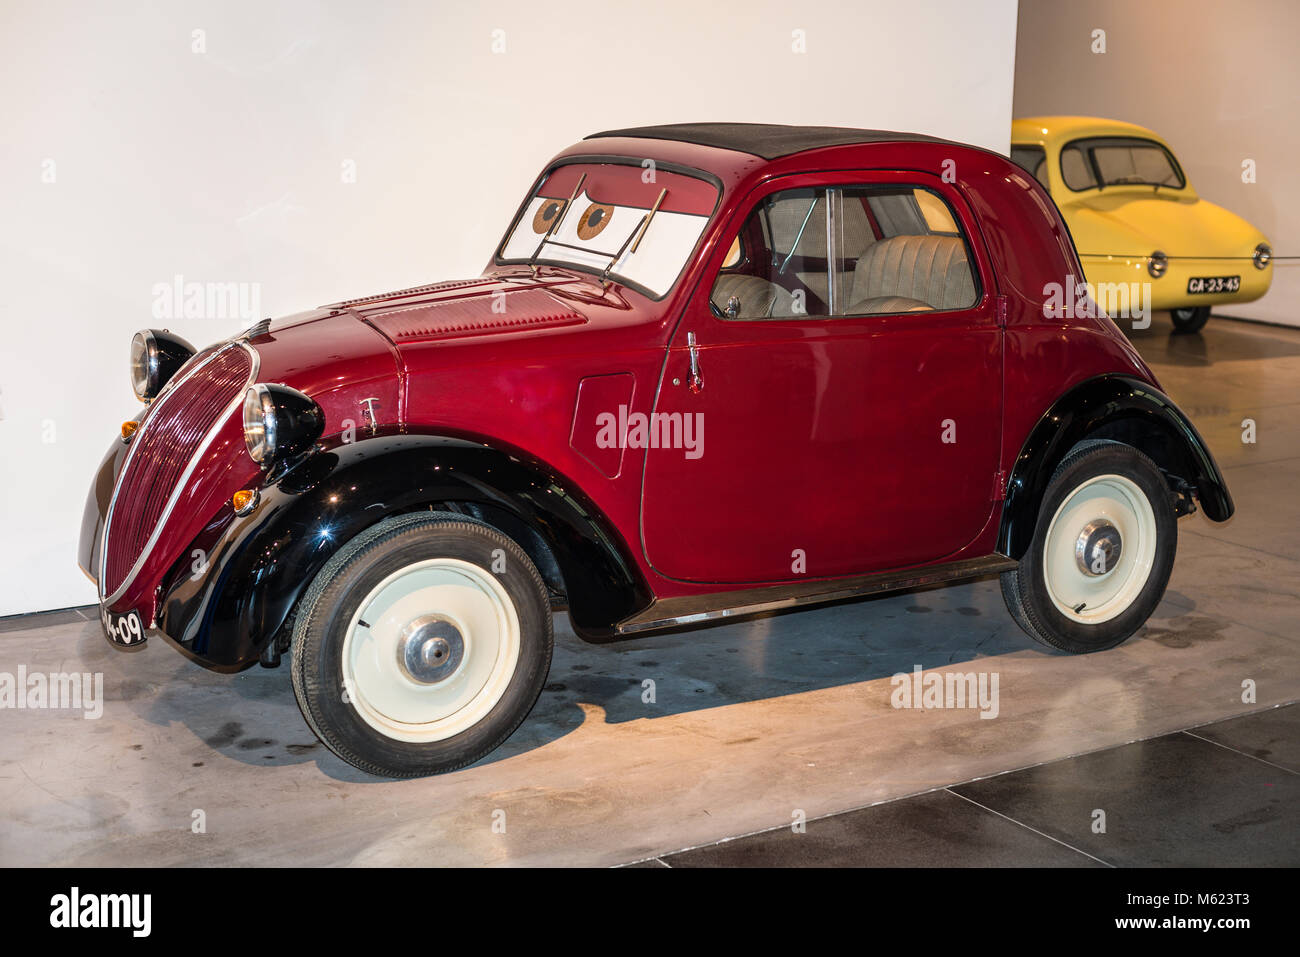 Malaga, Spain - December 7, 2016: Vintage Fiat 500 Topolino (model 1936) Italy car displayed at Malaga Automobile - Stock Image